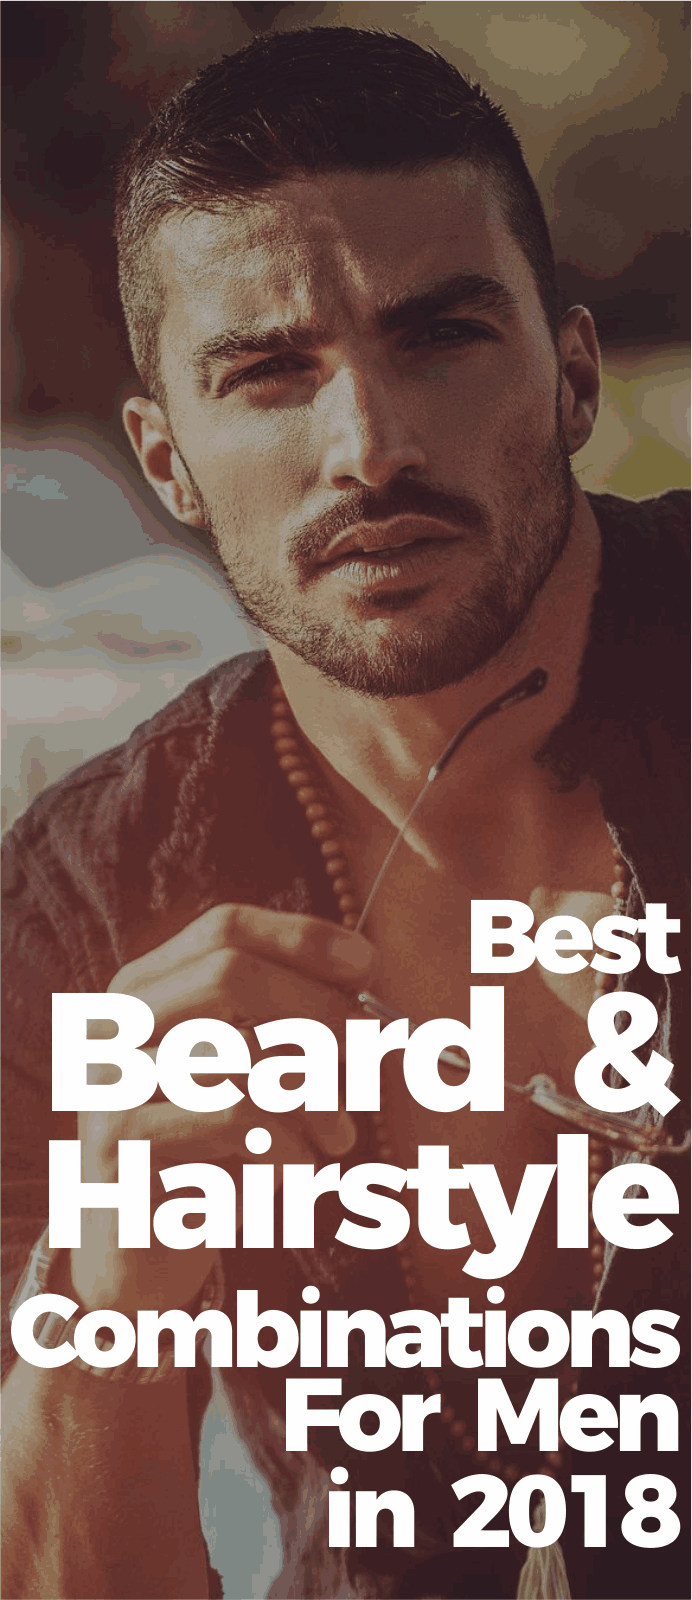 10 Perfect Beard & Hairstyle Combinations To Choose From